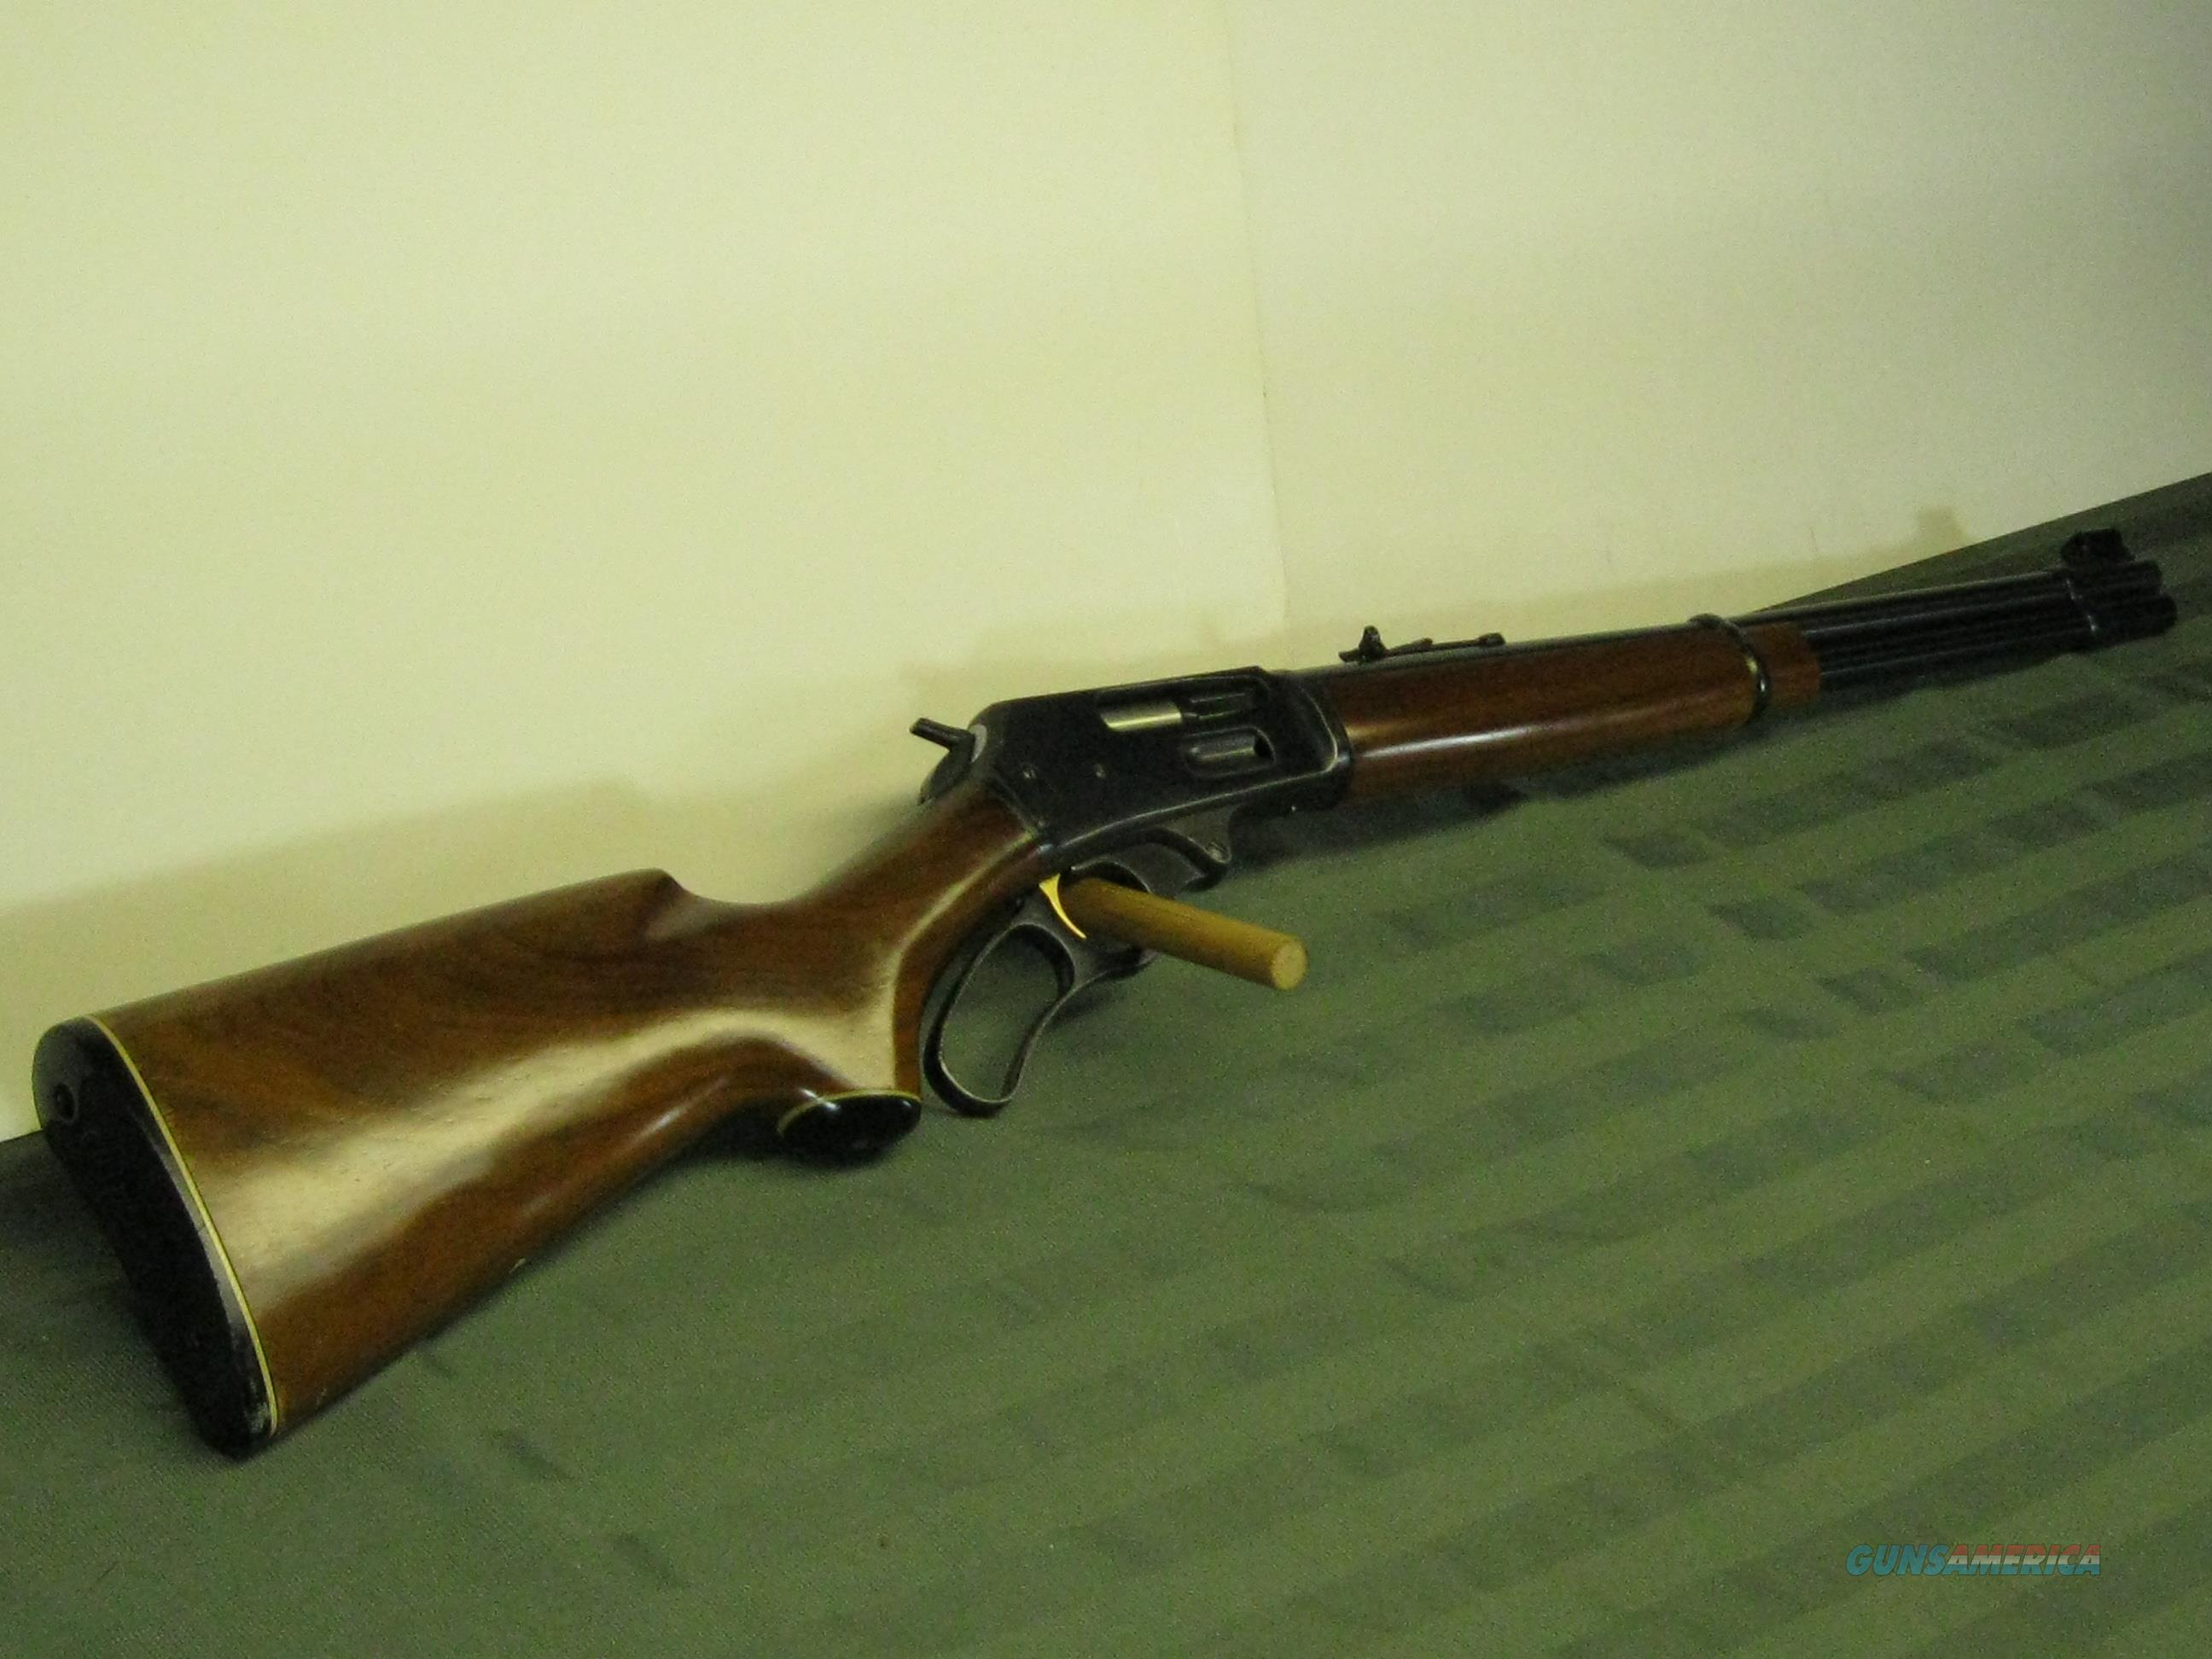 Marlin Model 336 .35 Cal. lever action  Guns > Rifles > Marlin Rifles > Modern > Lever Action